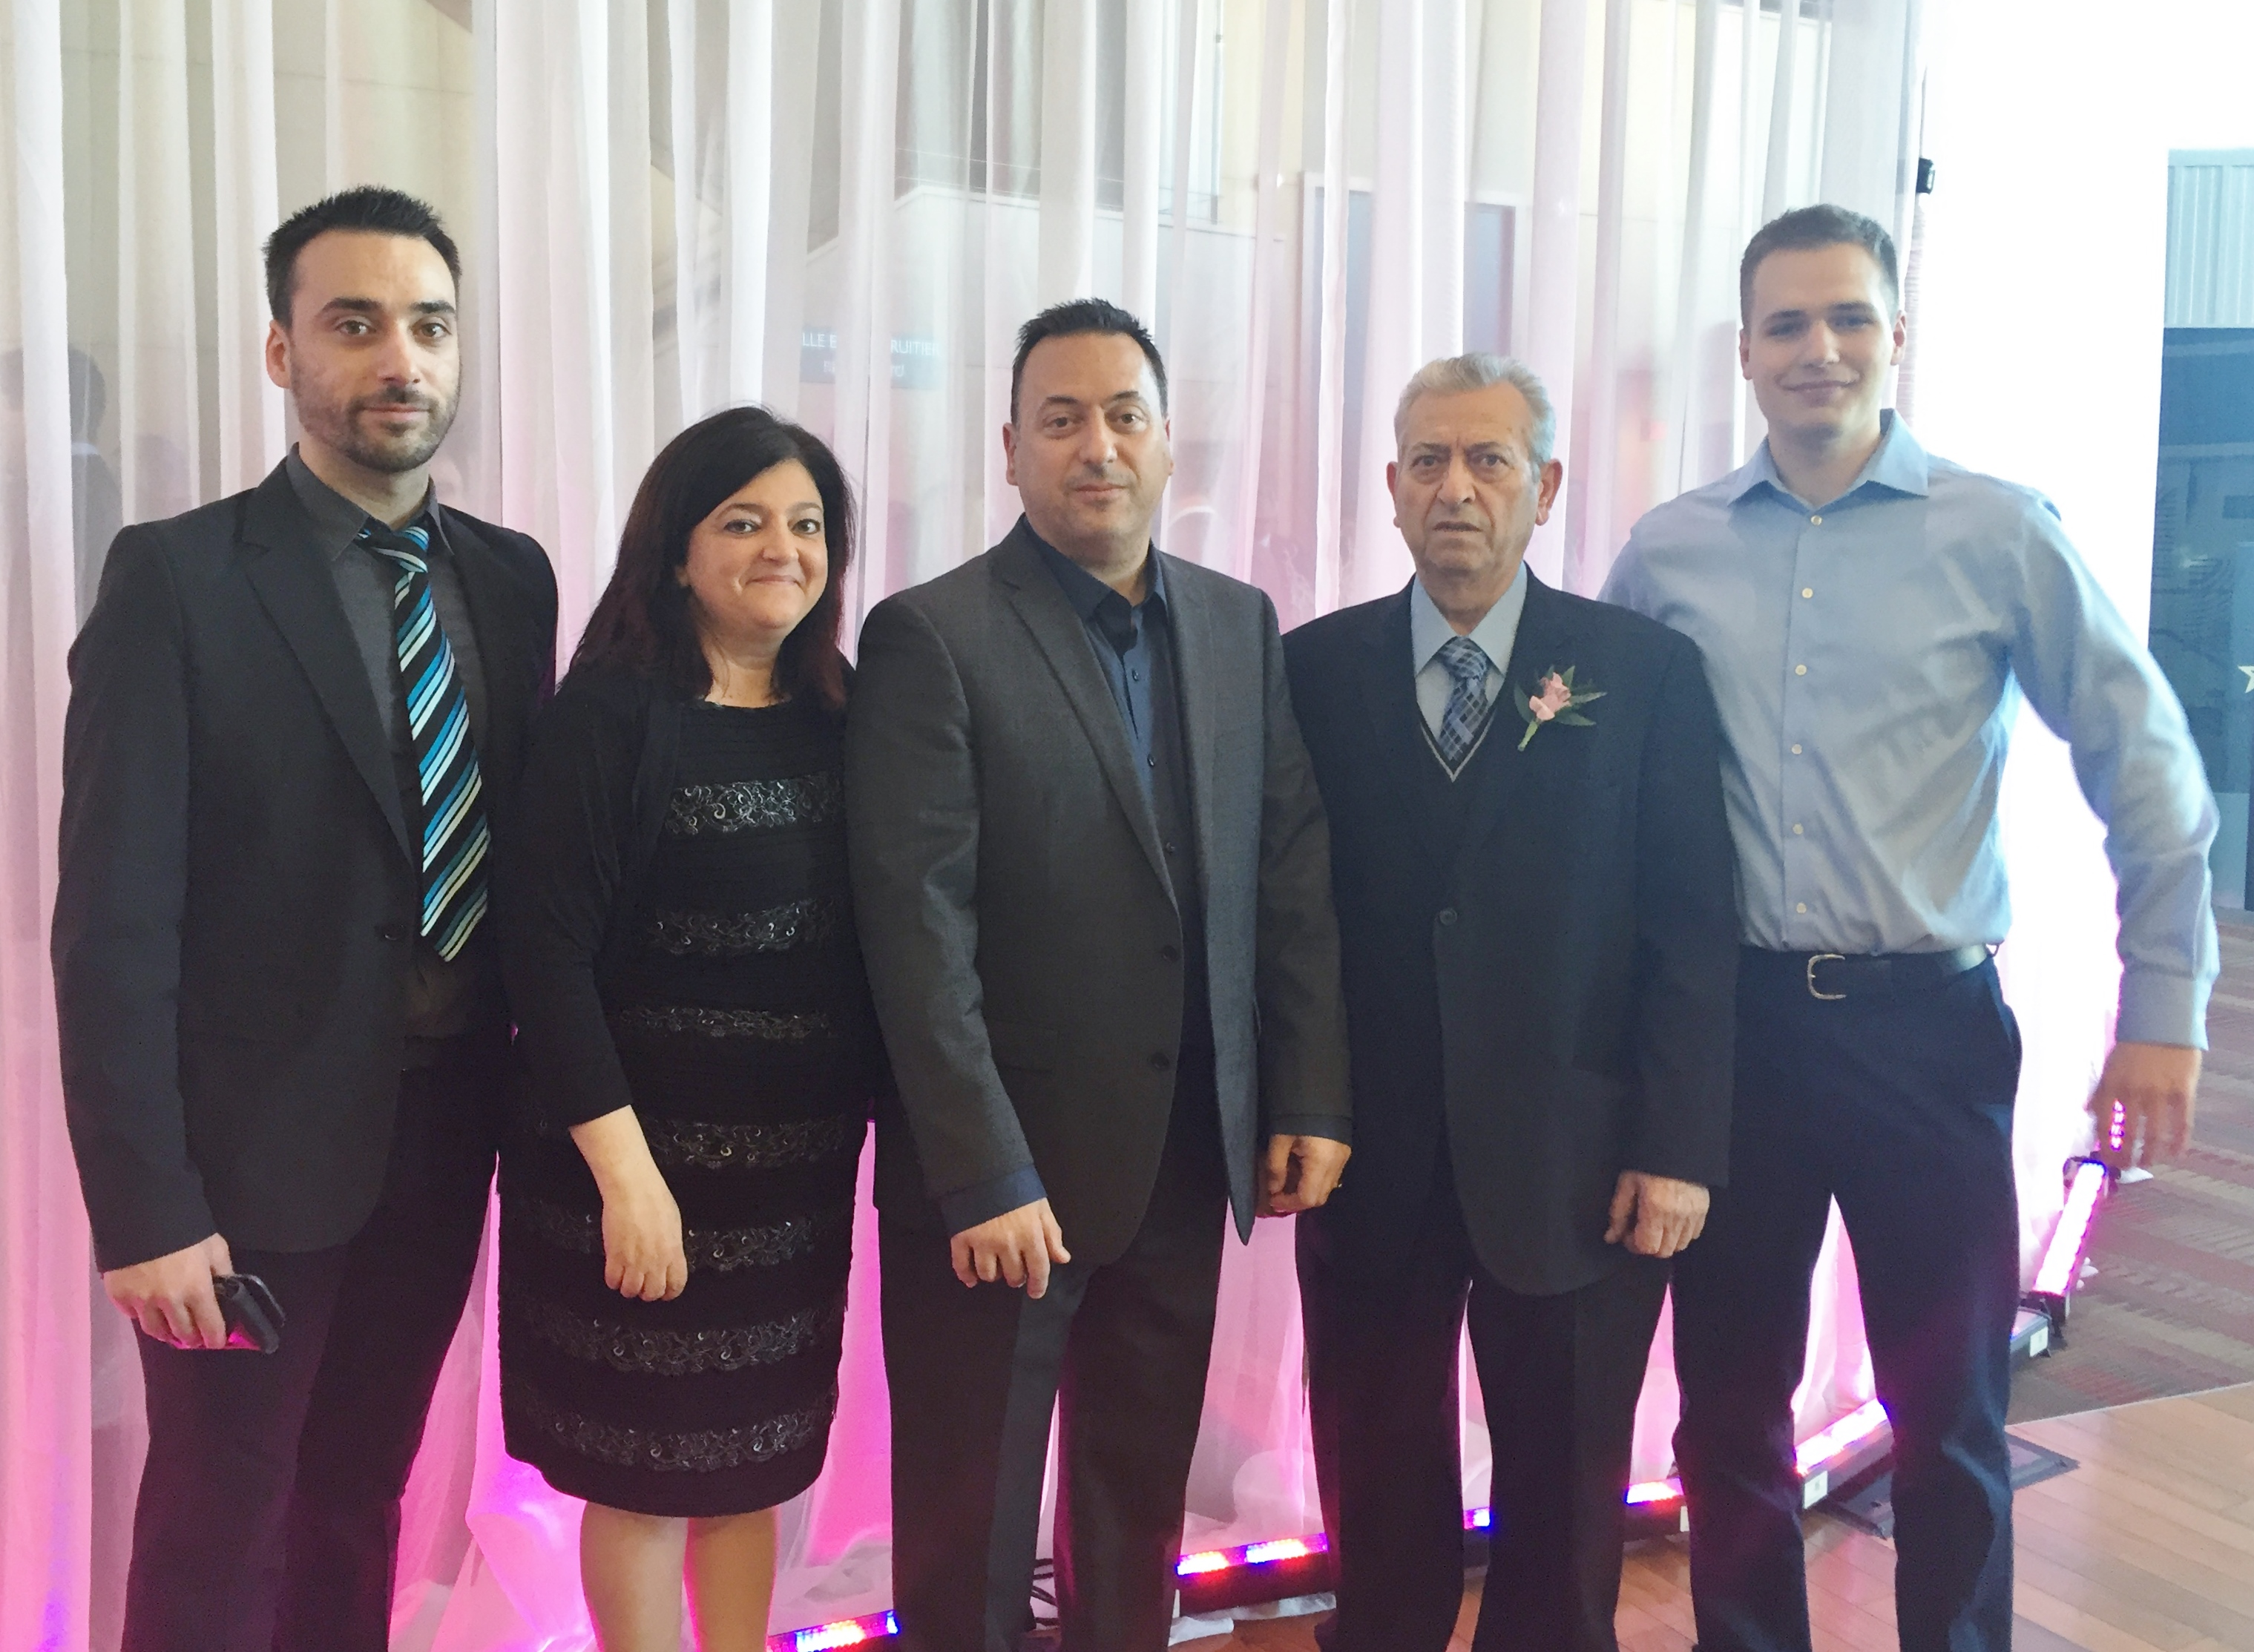 CCIRS Awards Gala 2016 - CV Plastics Team